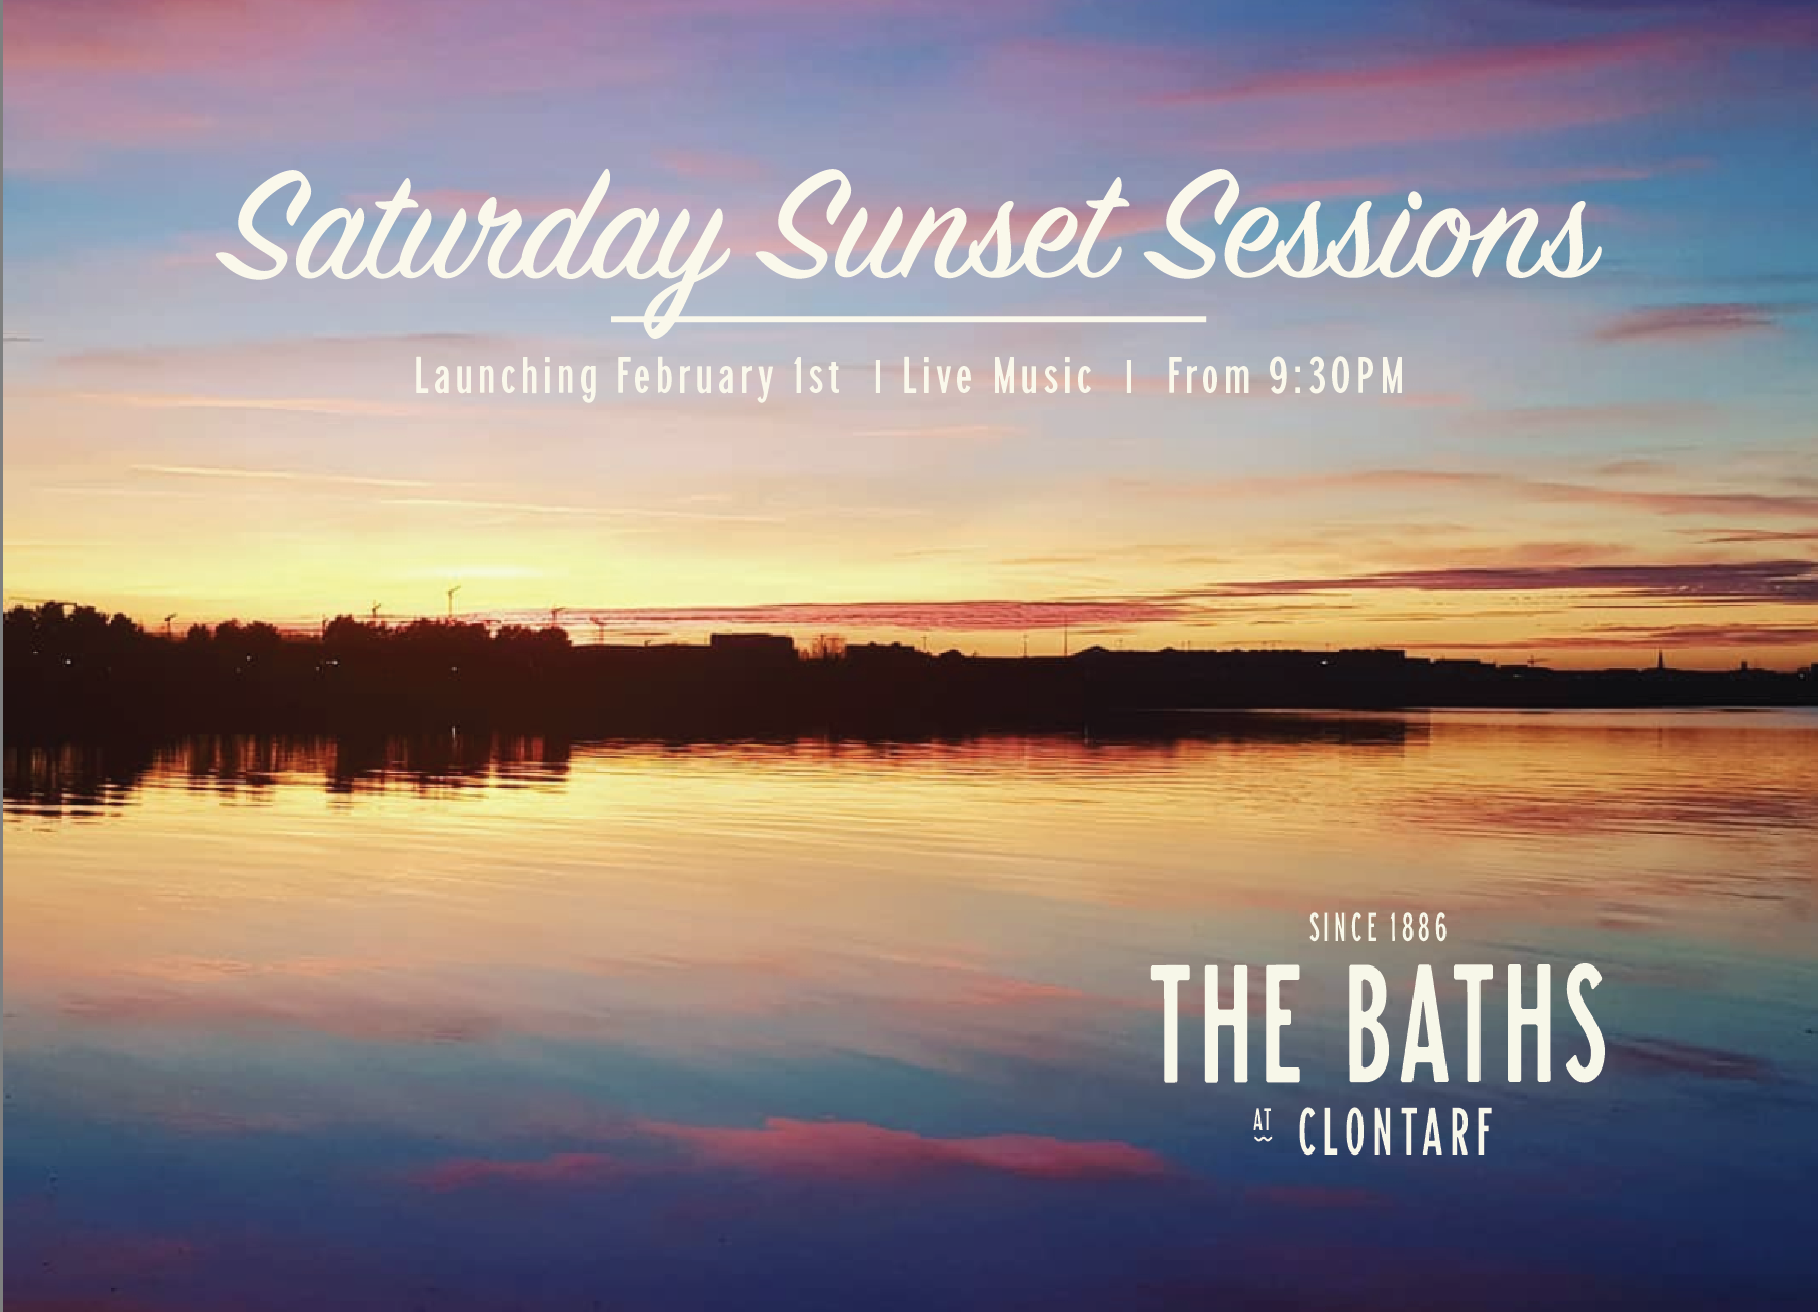 Saturday Sunset Sessions